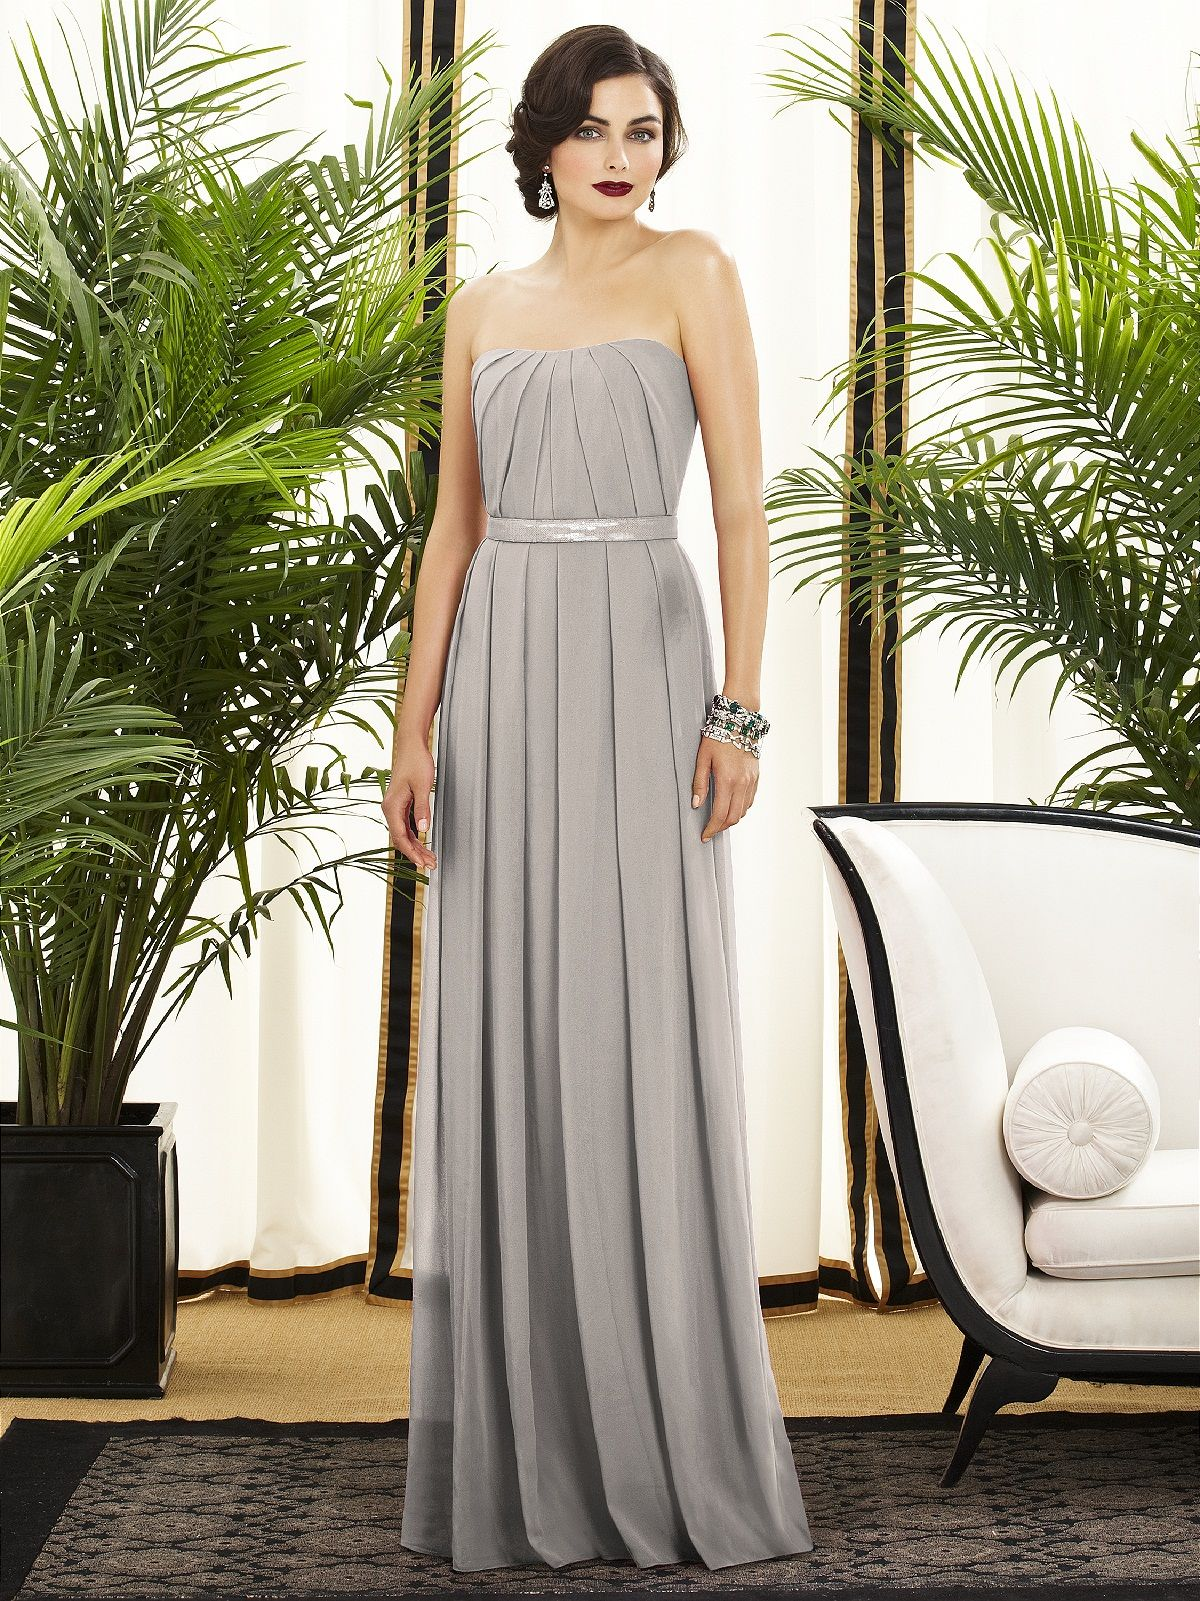 Cheap silver dresses for weddings  Dessy Collection Style   Wedding